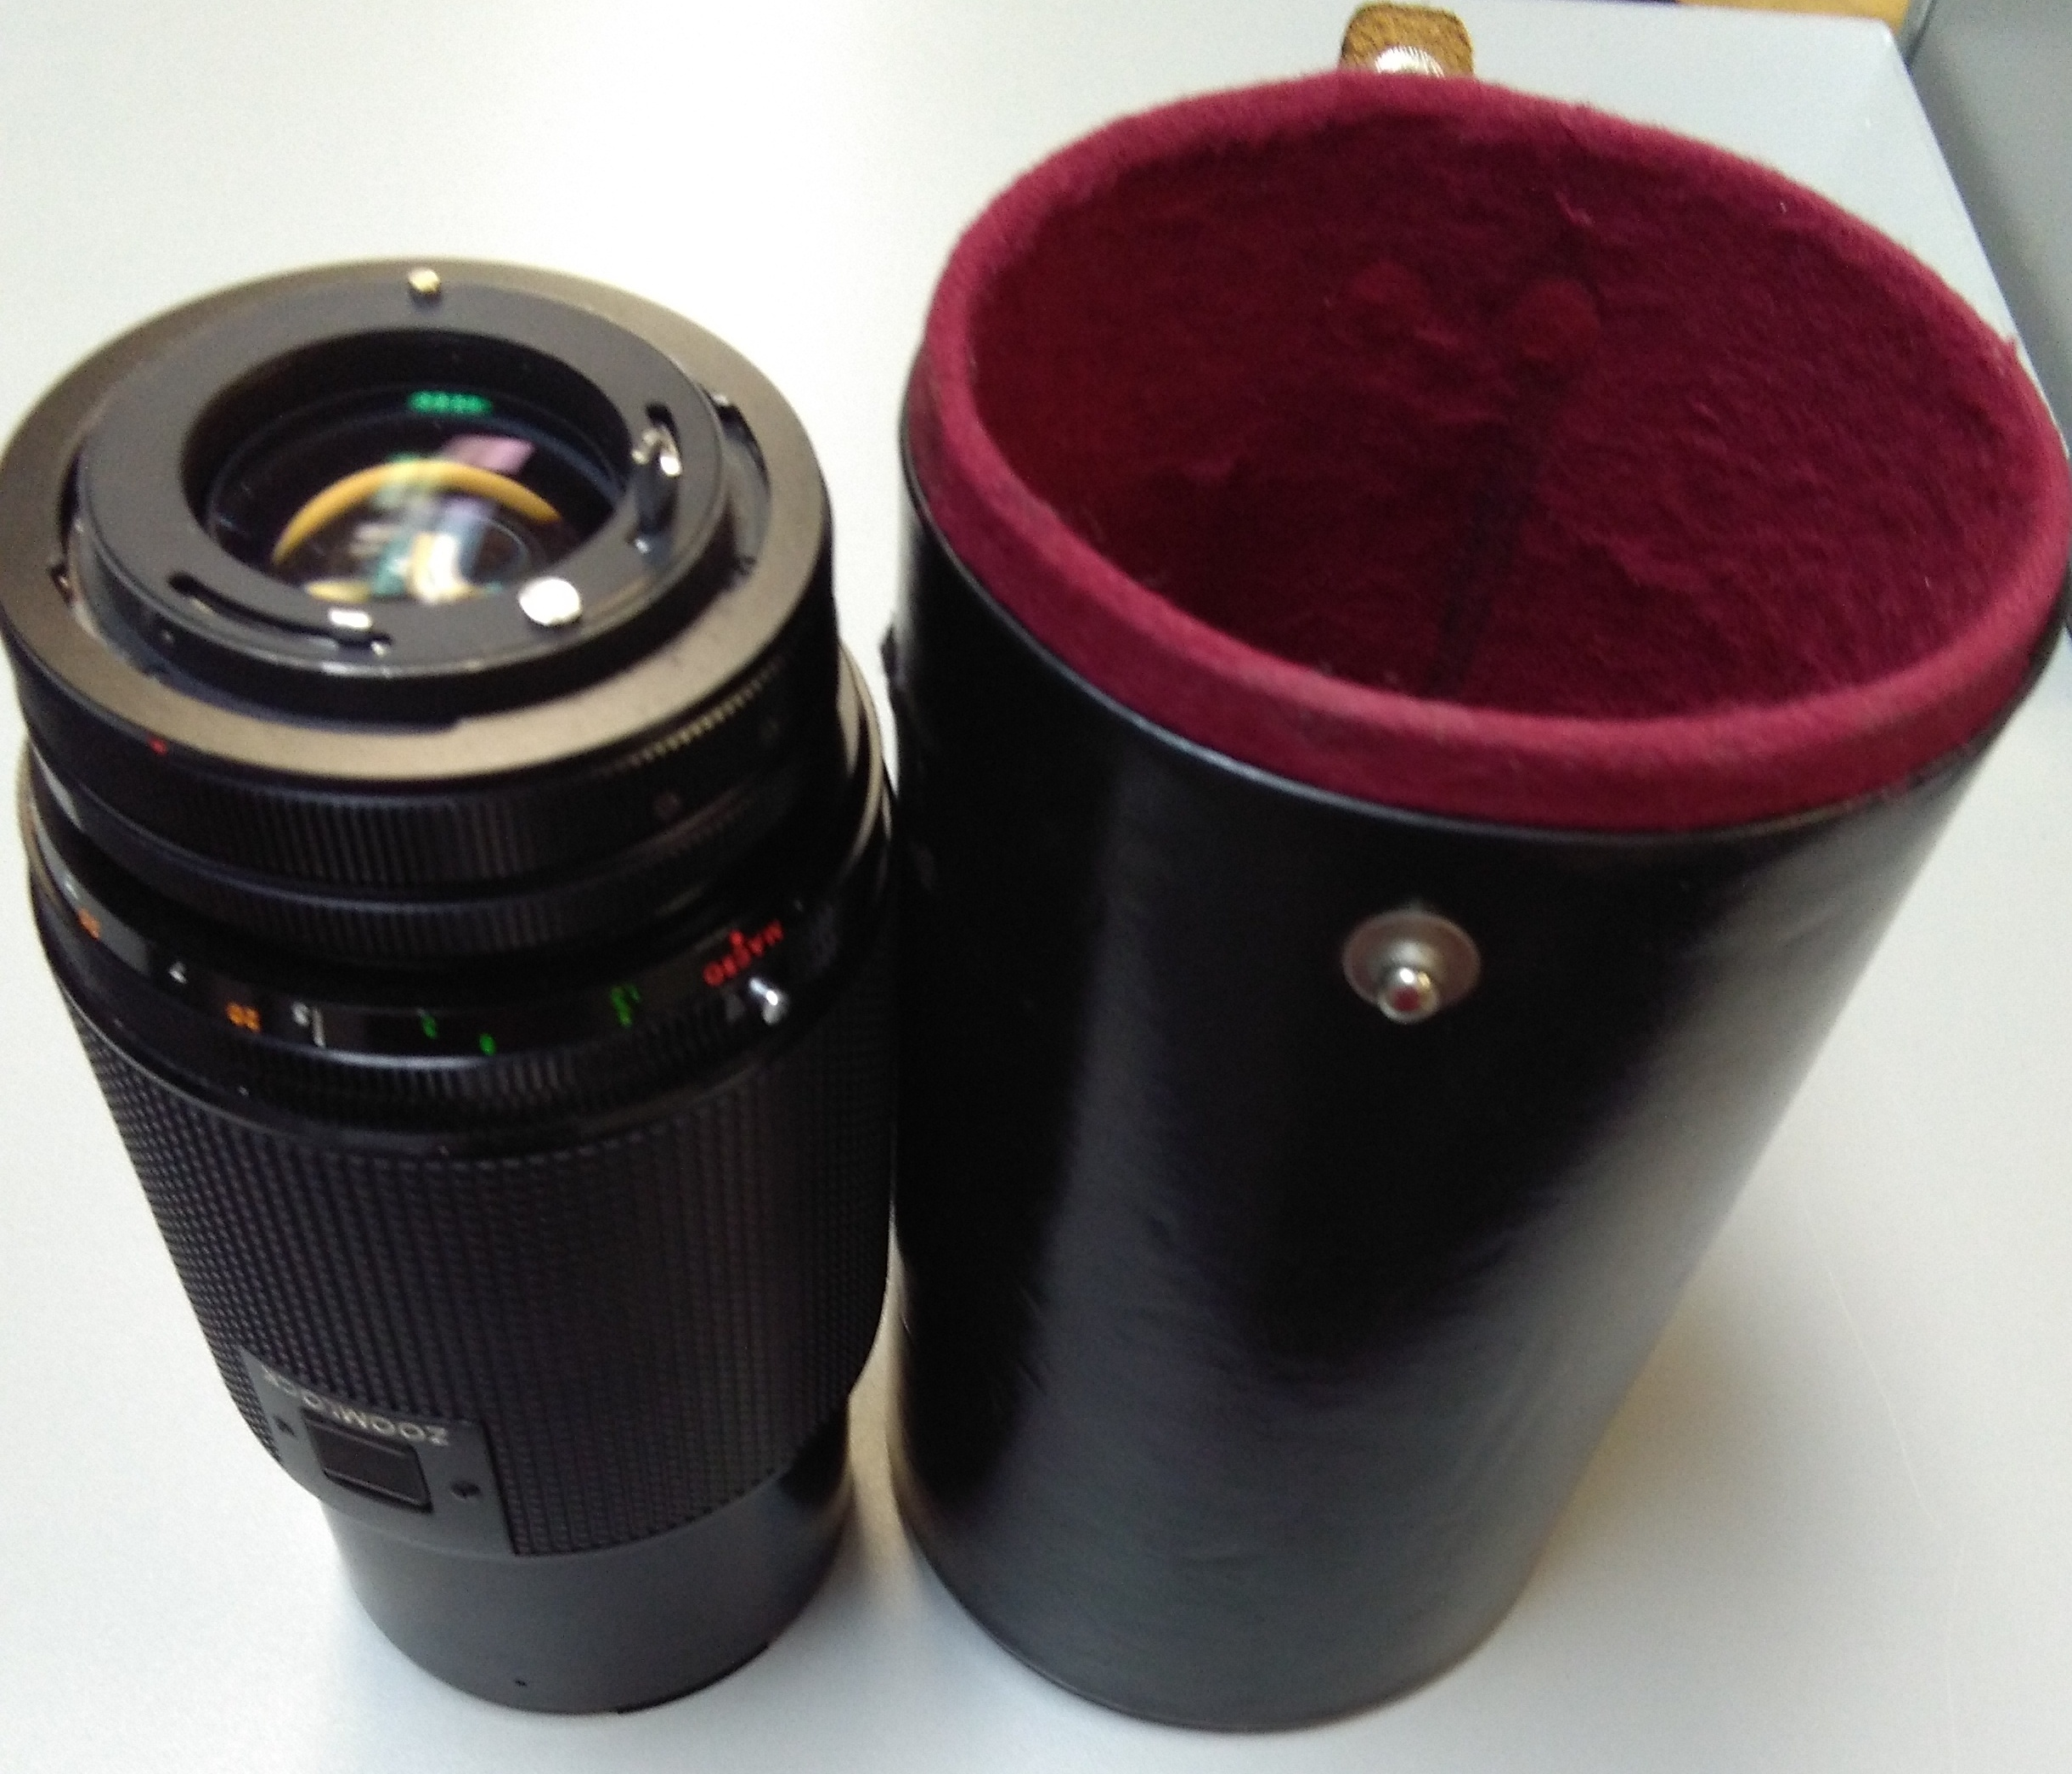 KIRON 70-210 MM CAMERA LENS